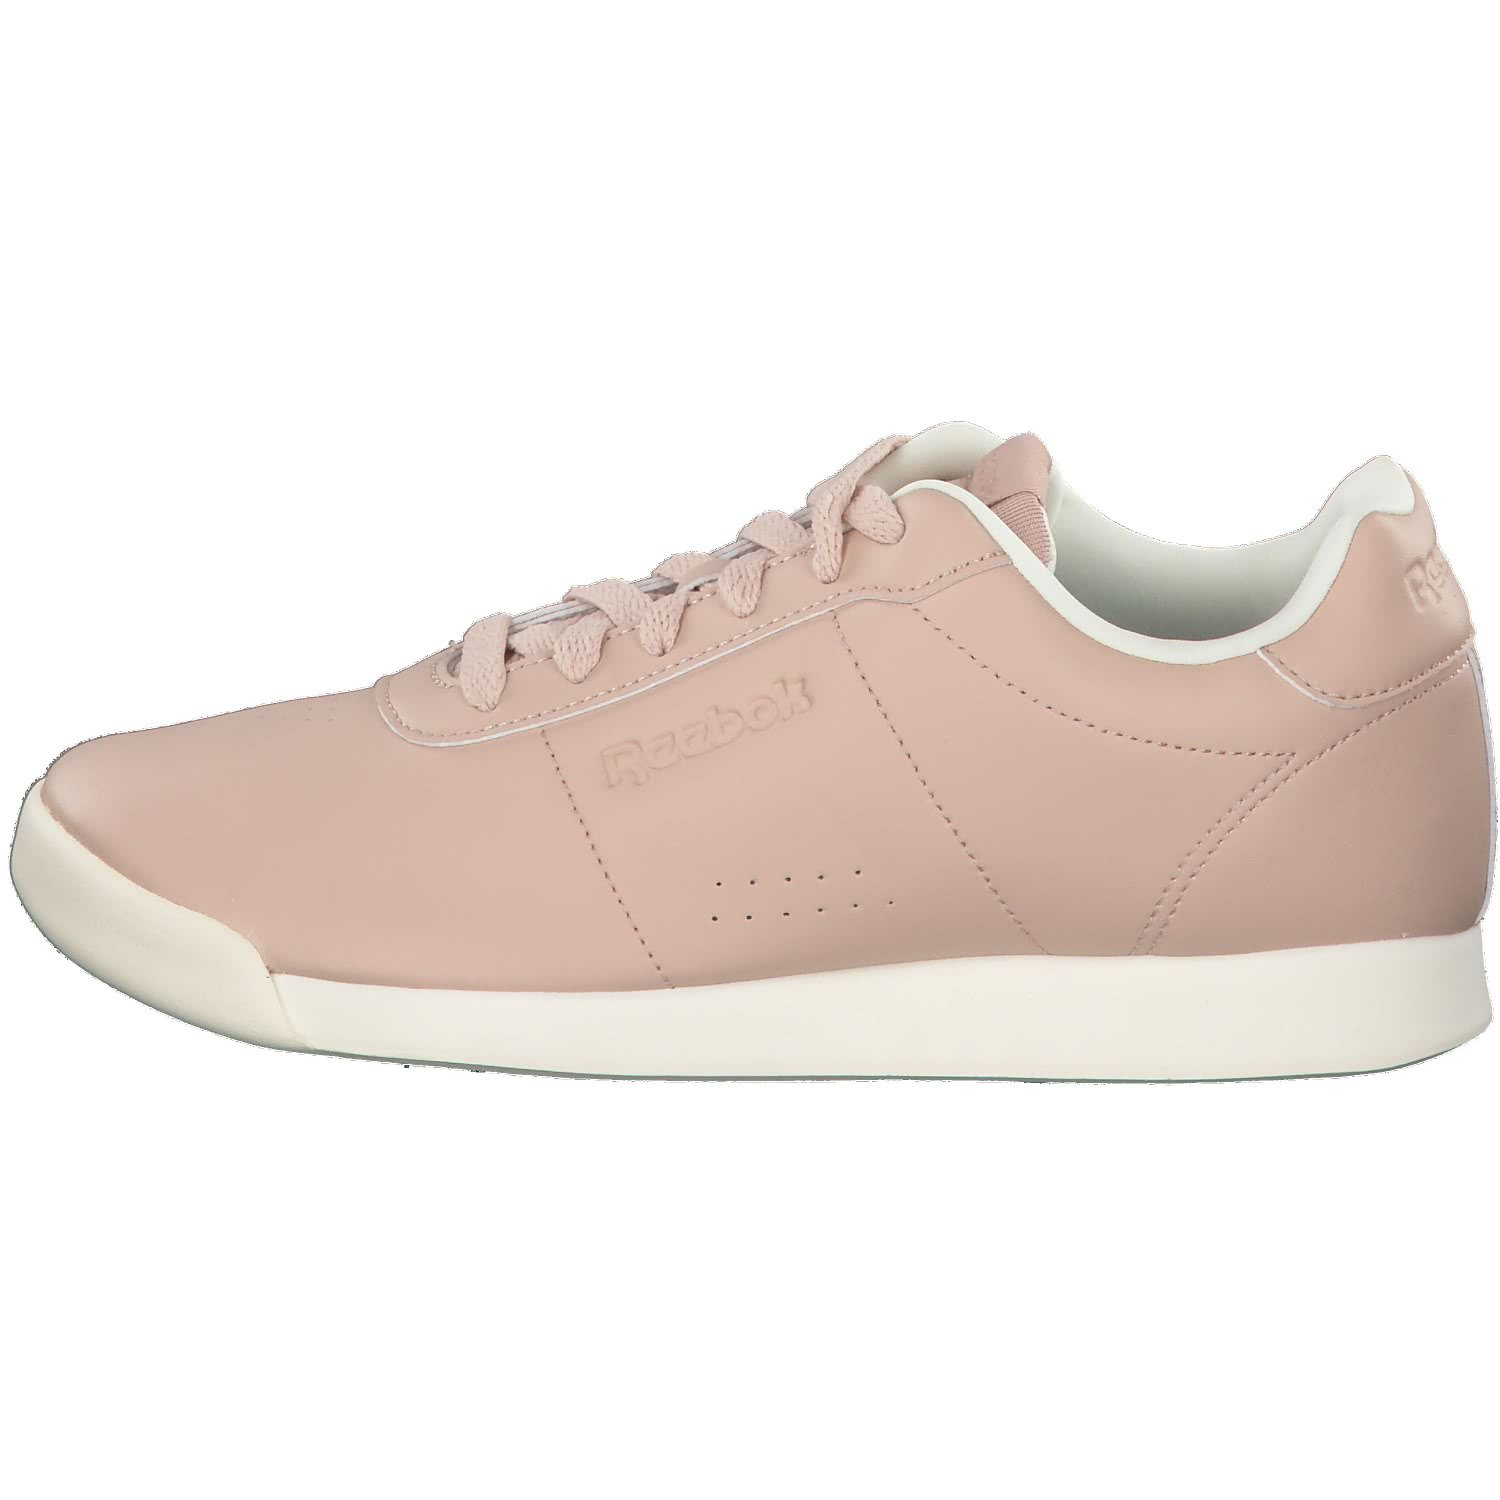 dd8fd6dc4aa1 Reebok Women s Royal Charm Fitness Shoes  Amazon.co.uk  Shoes   Bags